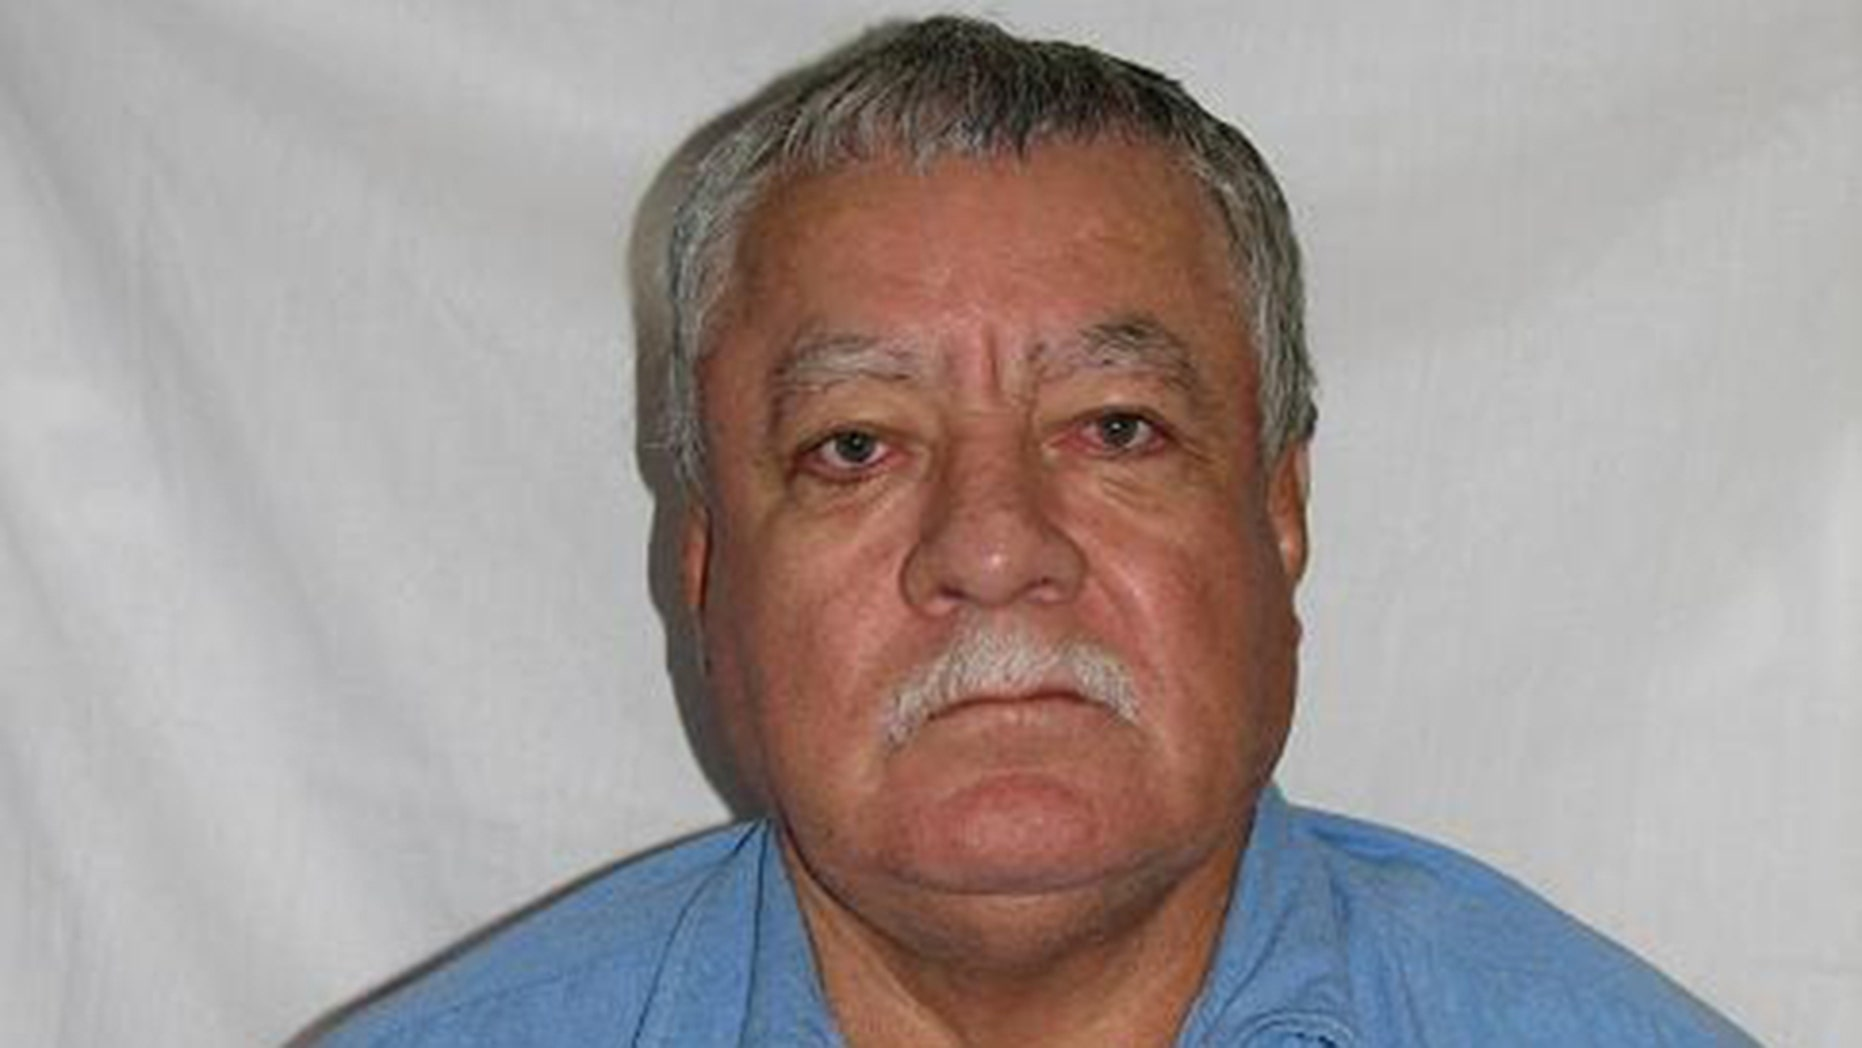 Vincente Benavides, 68, was released Thursday after spending nearly 25 years on death row after he was convicted of raping and murdering a toddler.